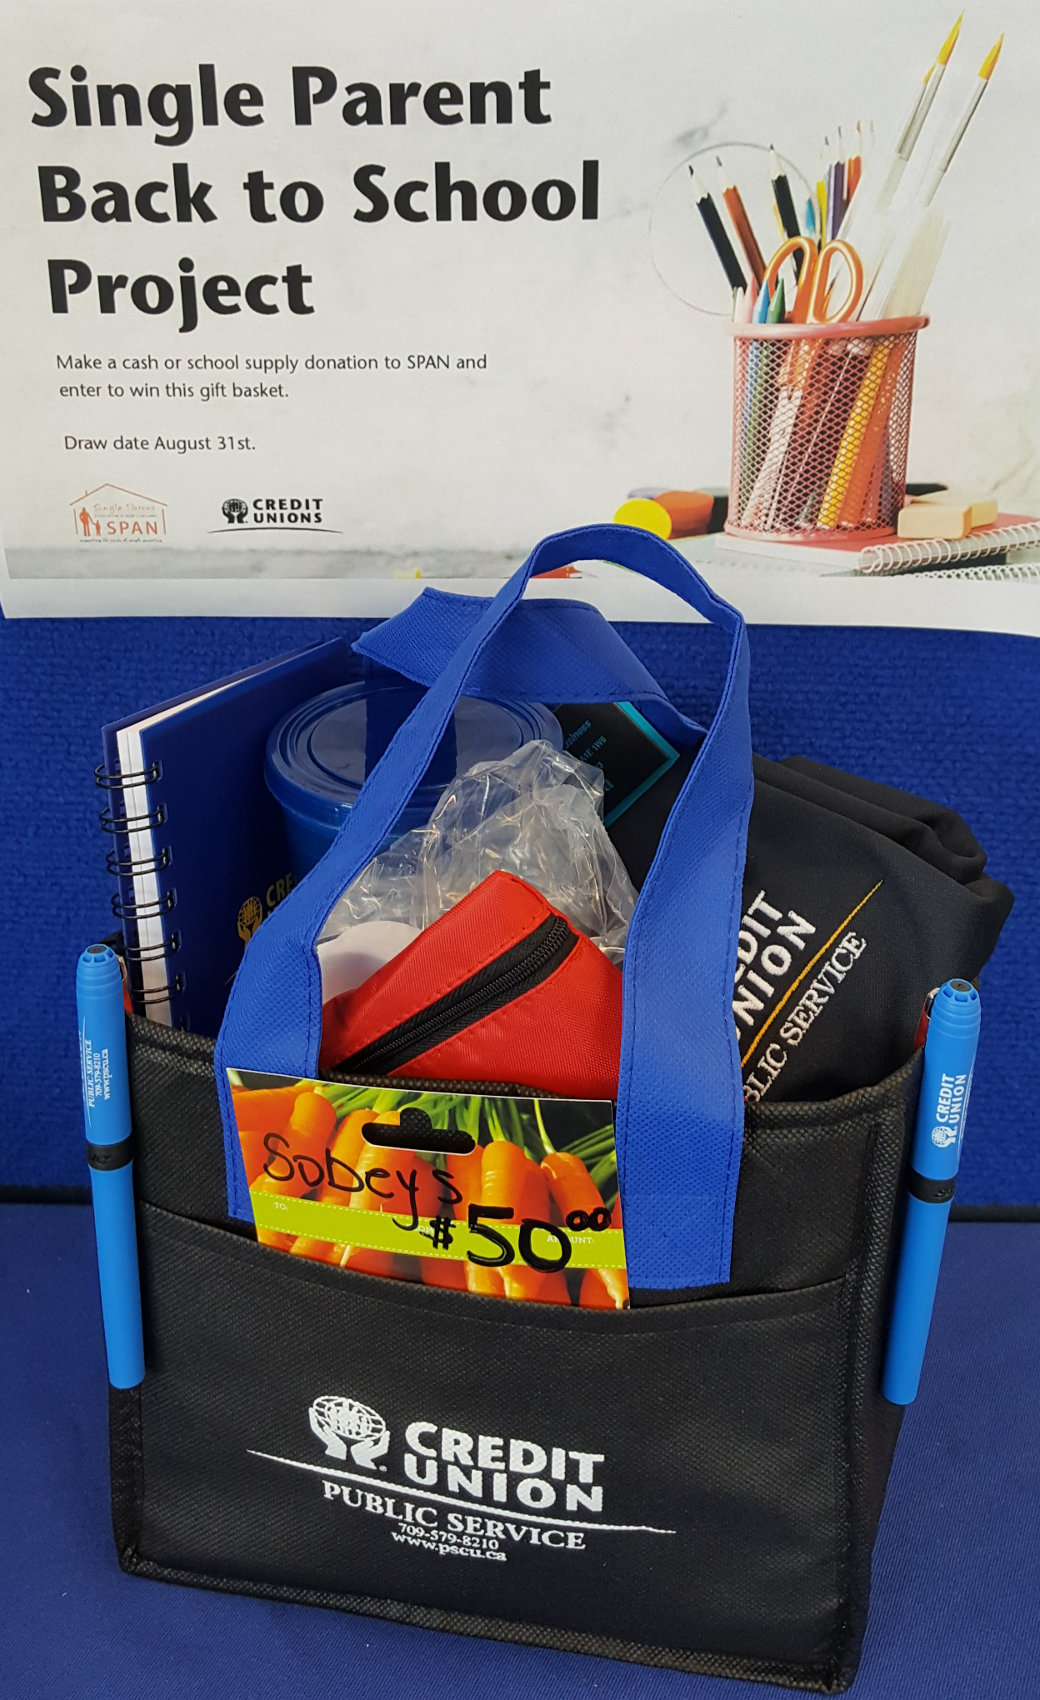 PSCU SPAN Prize Pack. The prize consists of a $50.00 Sobeys gift card, PSCU lunch bag, Ladies golf shirt, tumbler, hardcover note book and pens, ear buds, desk calendar and a mini travel first aid kit.